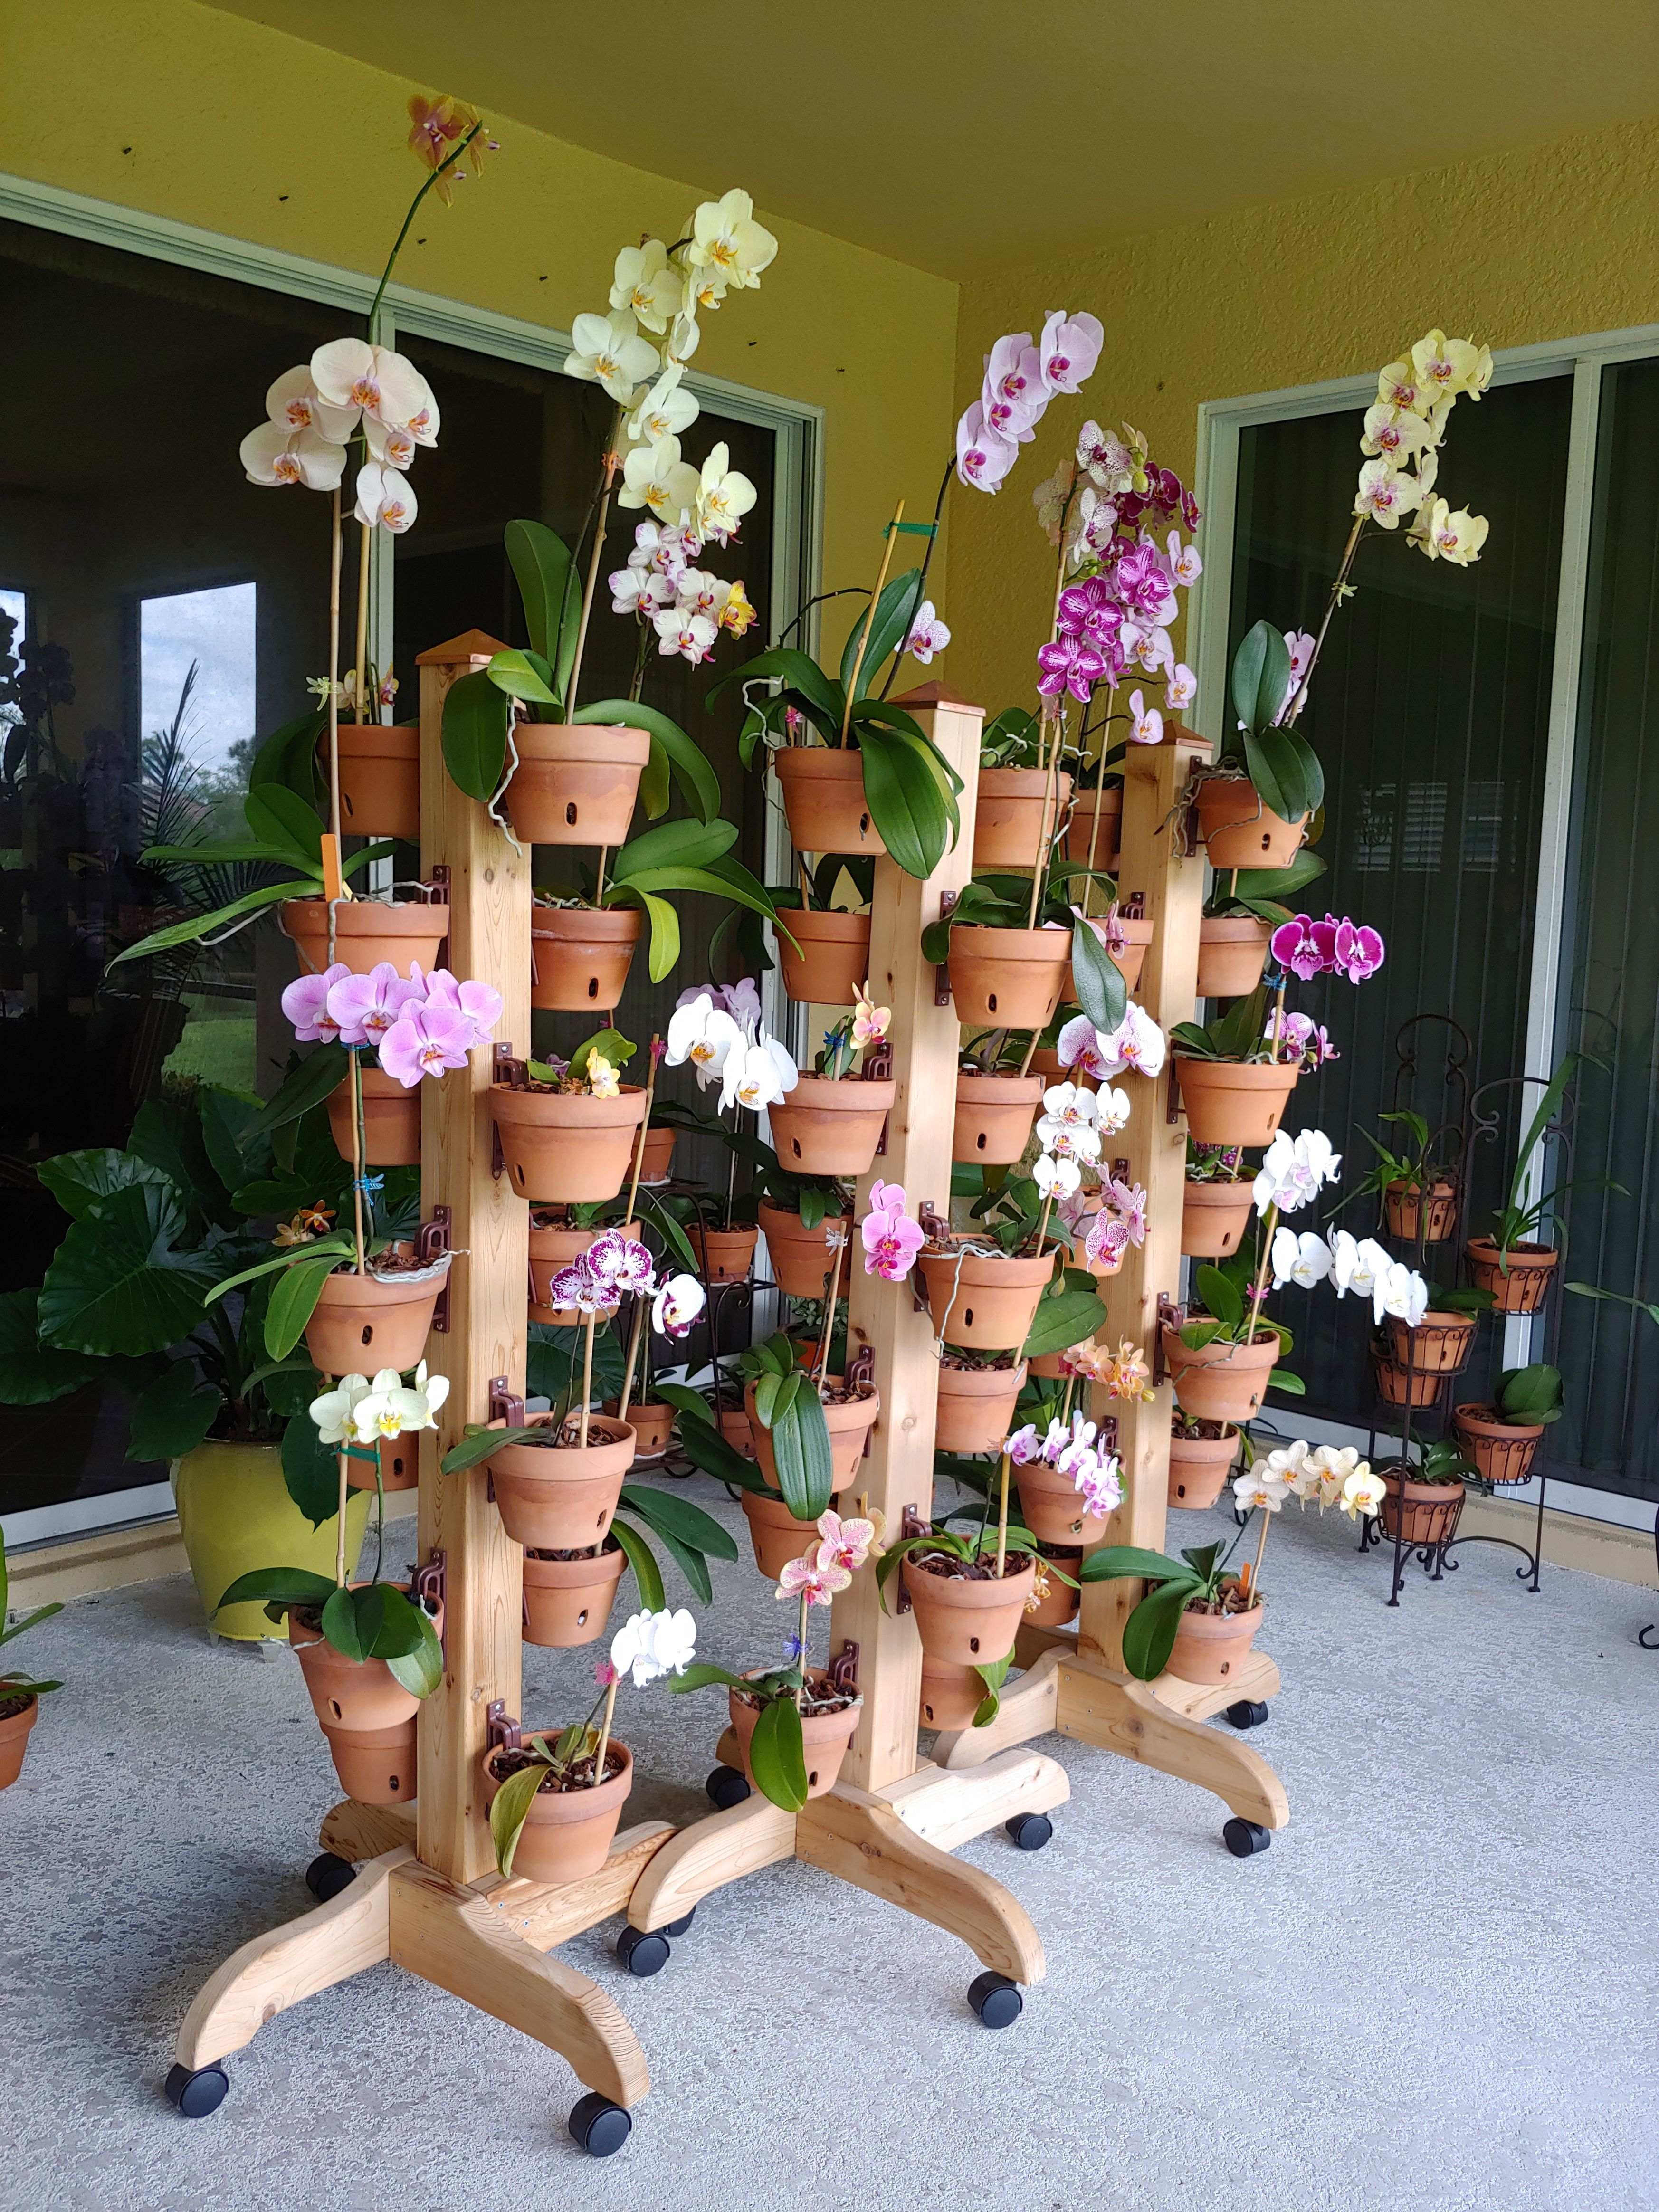 Need More Space For Your Orchids Hangapot Solid Cedar Plant Stands Come In 3 And 5 With Legs Wheels And Award Wi Cedar Plant Flower Pot Hanger Plant Stand